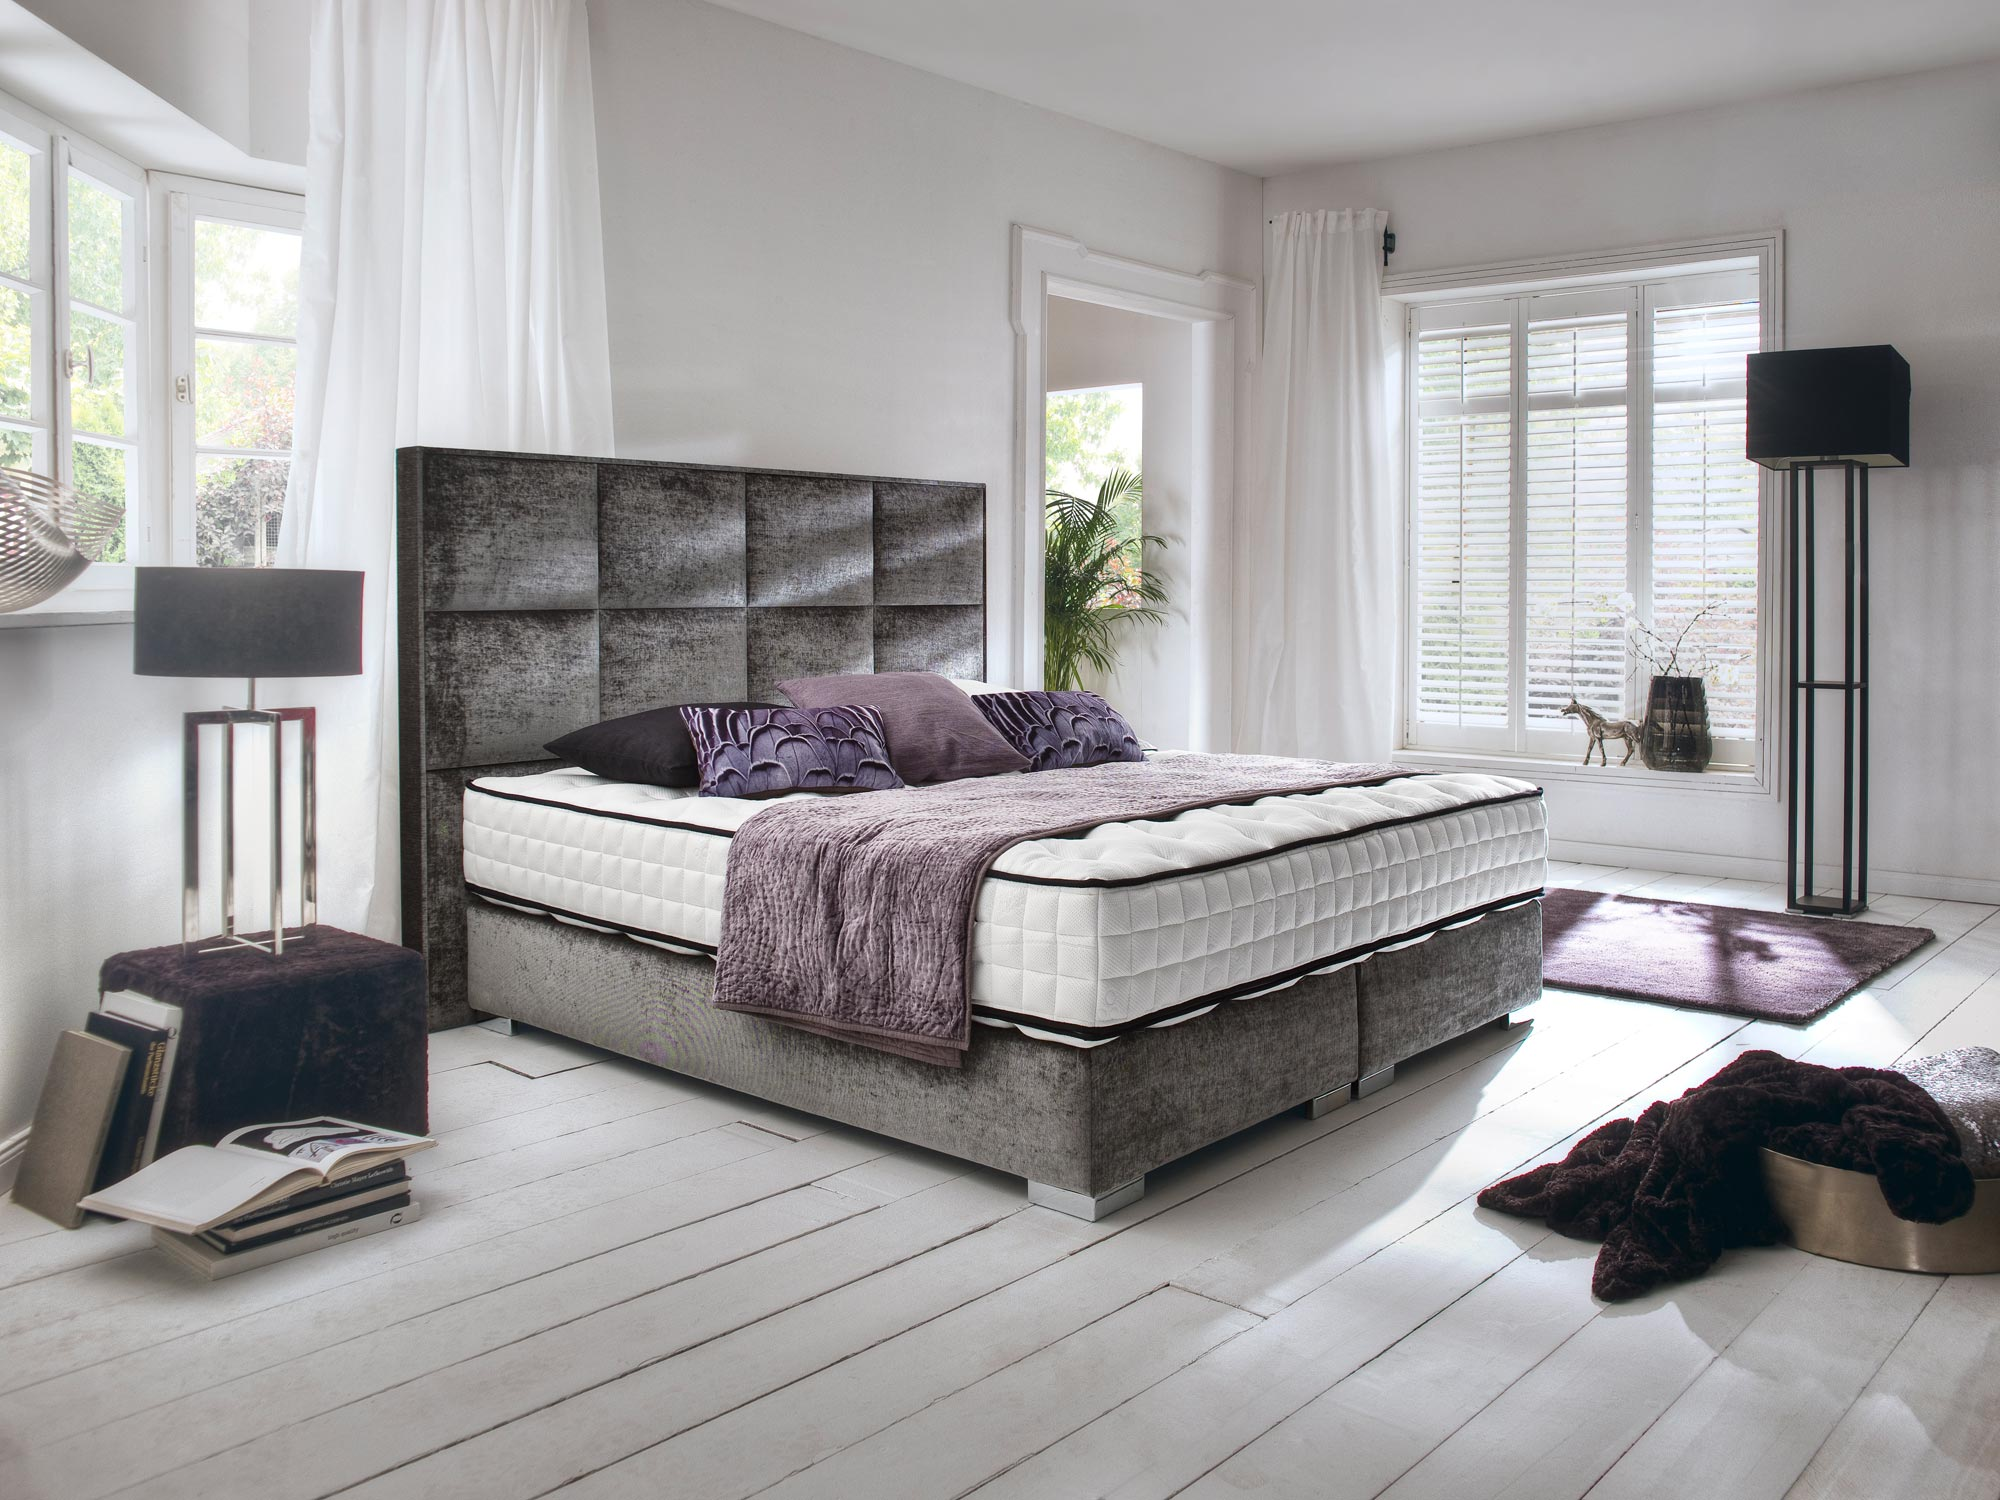 boxspringbett kingston farbe und stoff nach wahl. Black Bedroom Furniture Sets. Home Design Ideas